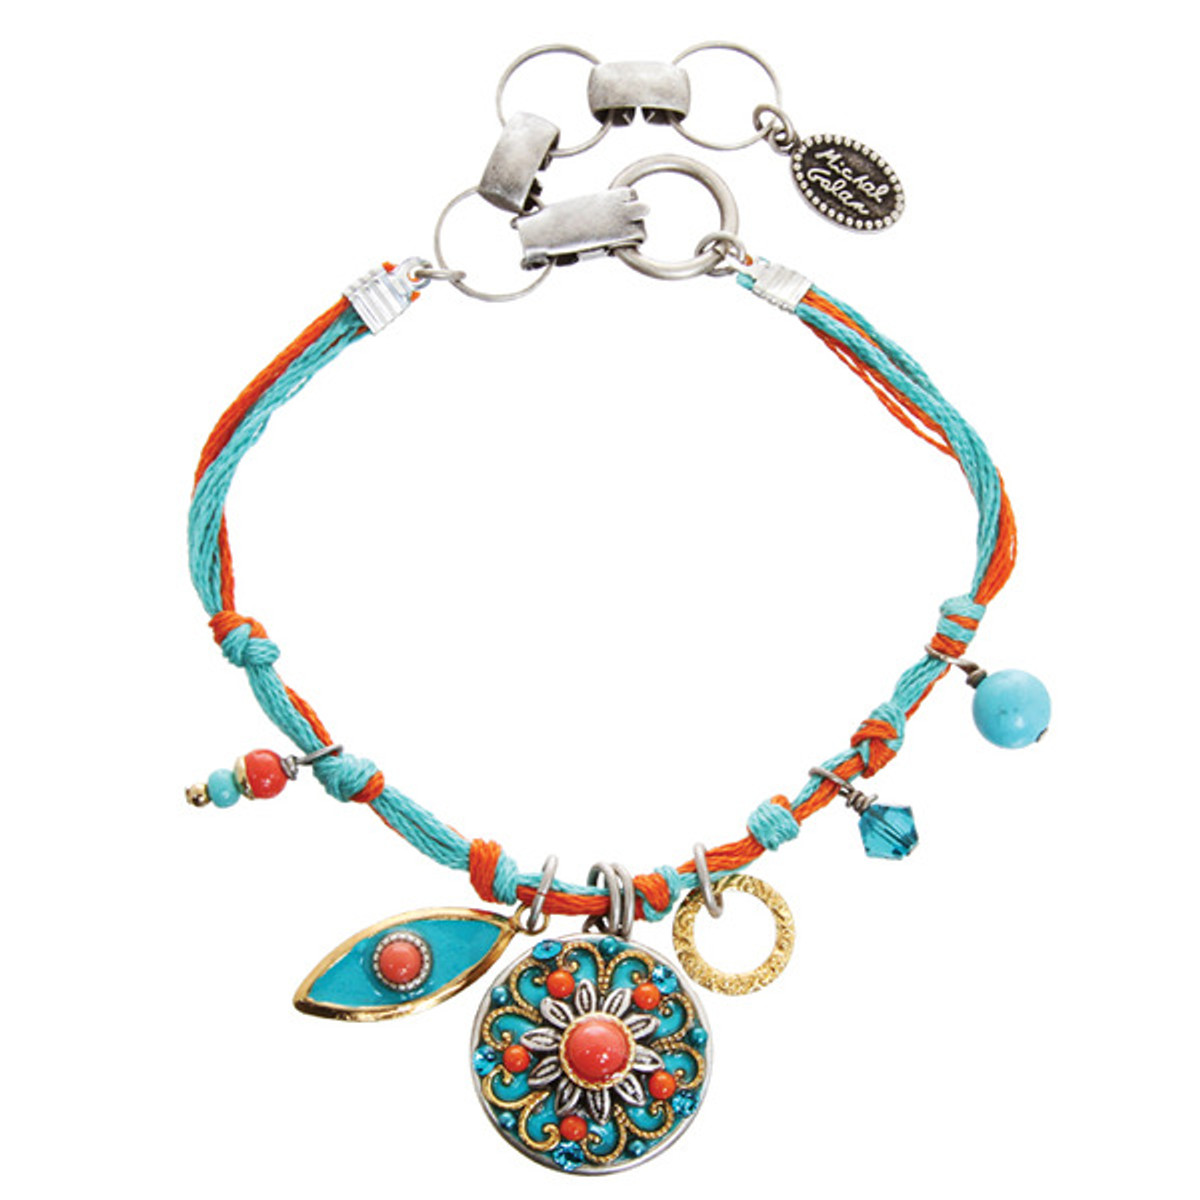 A Lovely Coral Sea Bracelet From Michal Golan Jewelry